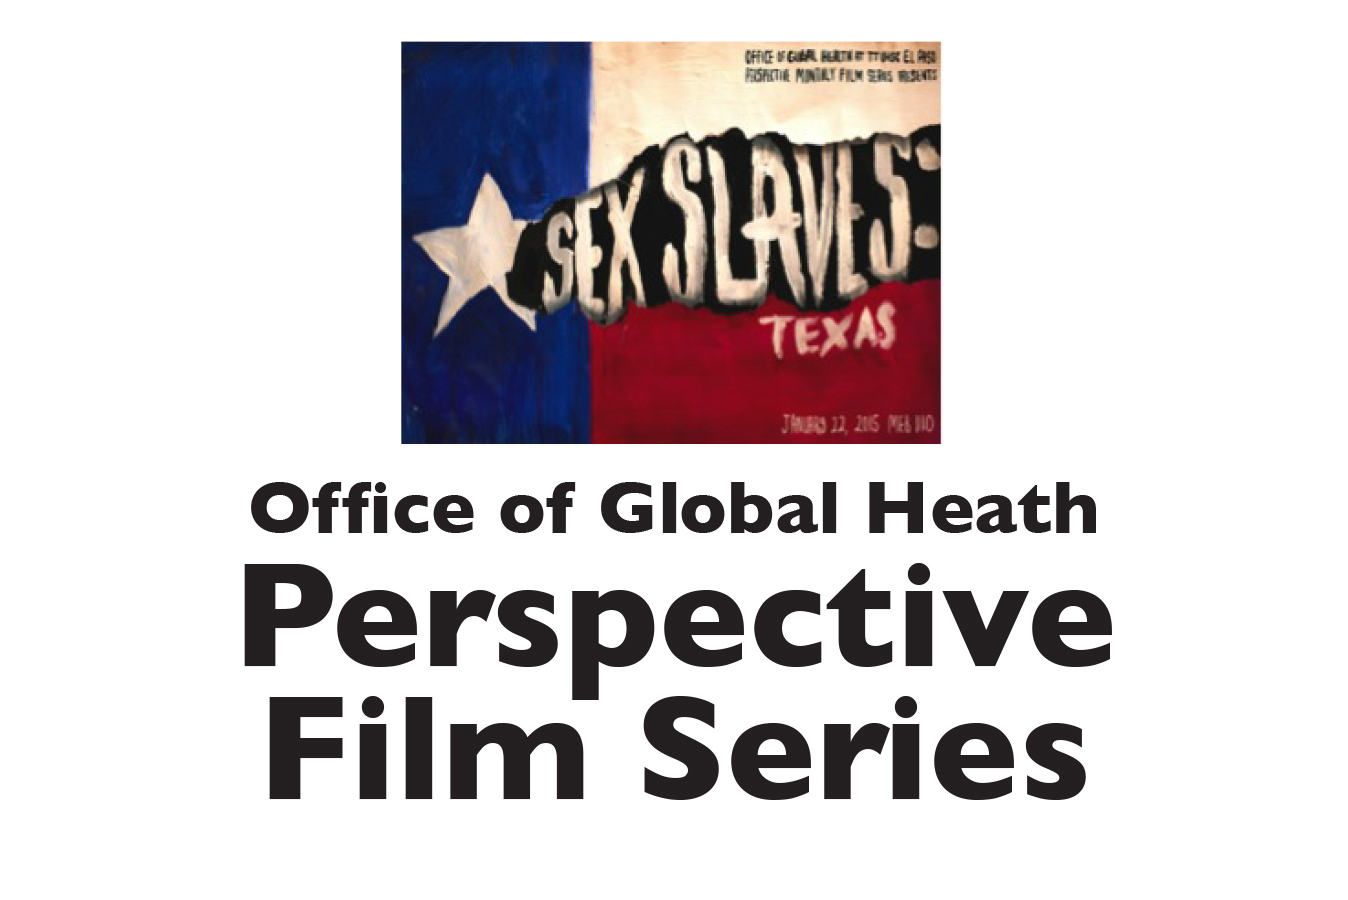 Office of Global Health Perspective Film Series – Sex Slaves: Texas